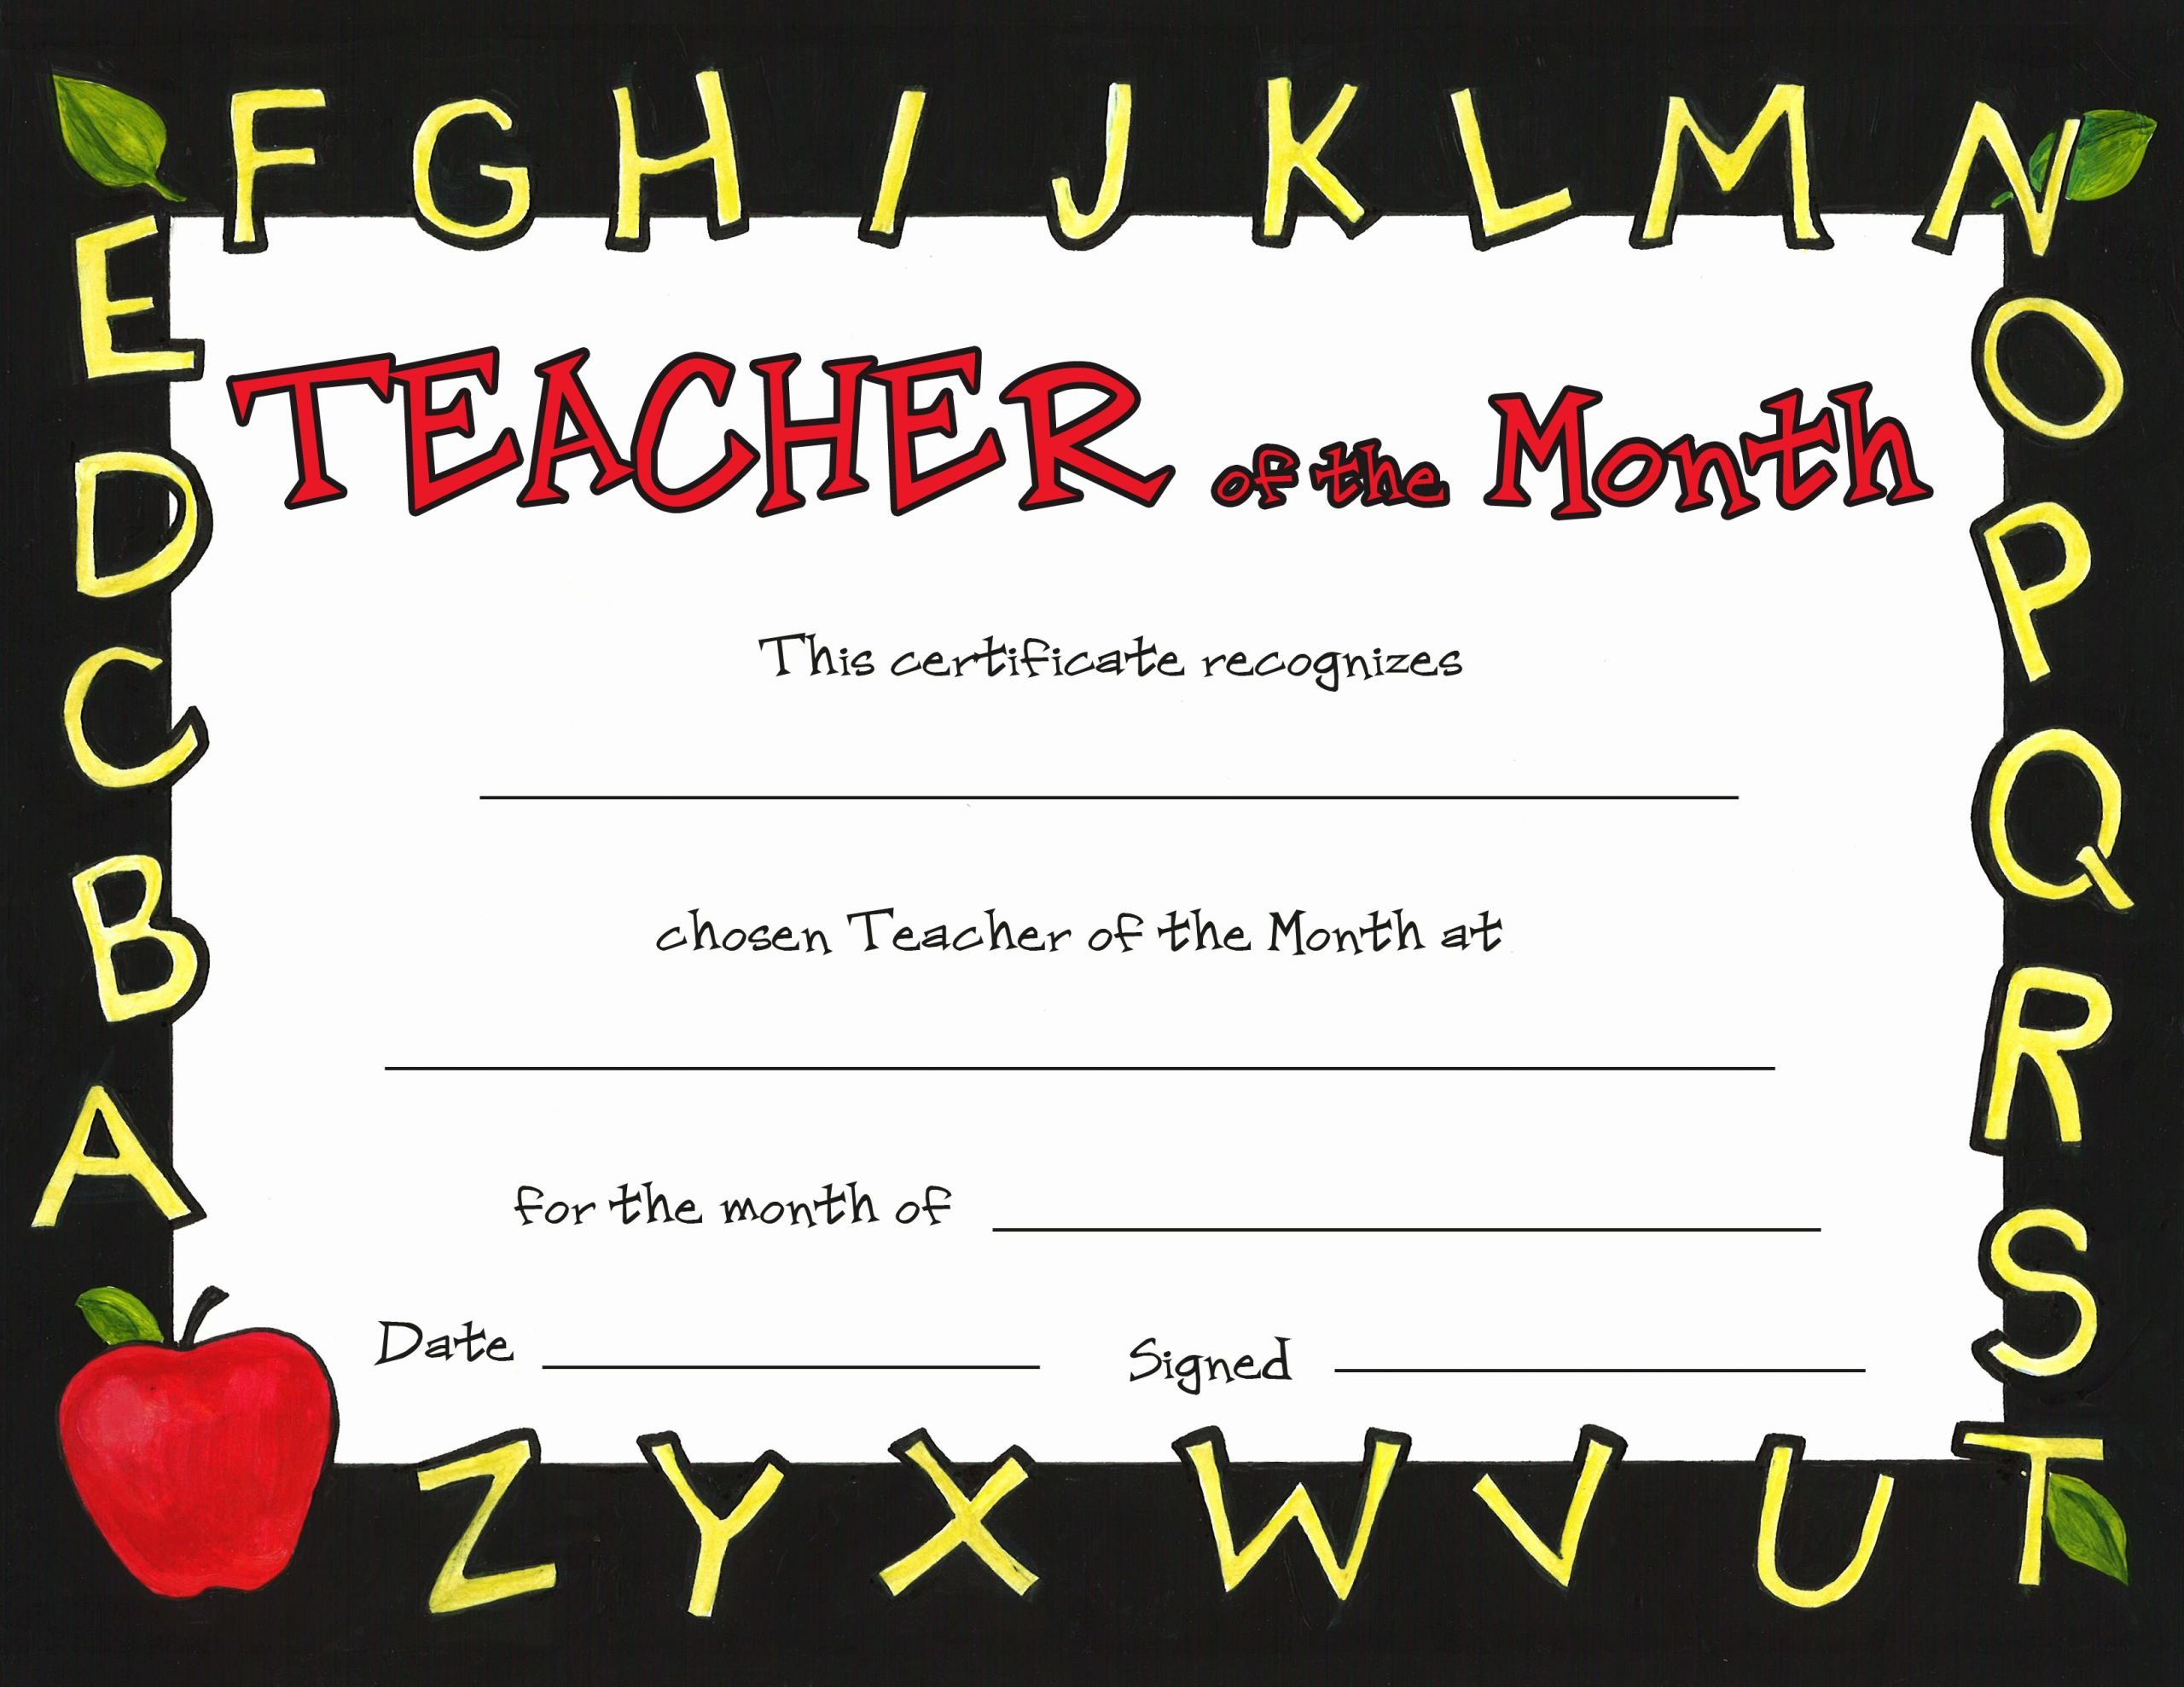 Teacher Of the Month Certificate Template Fresh Teacher Of the Month